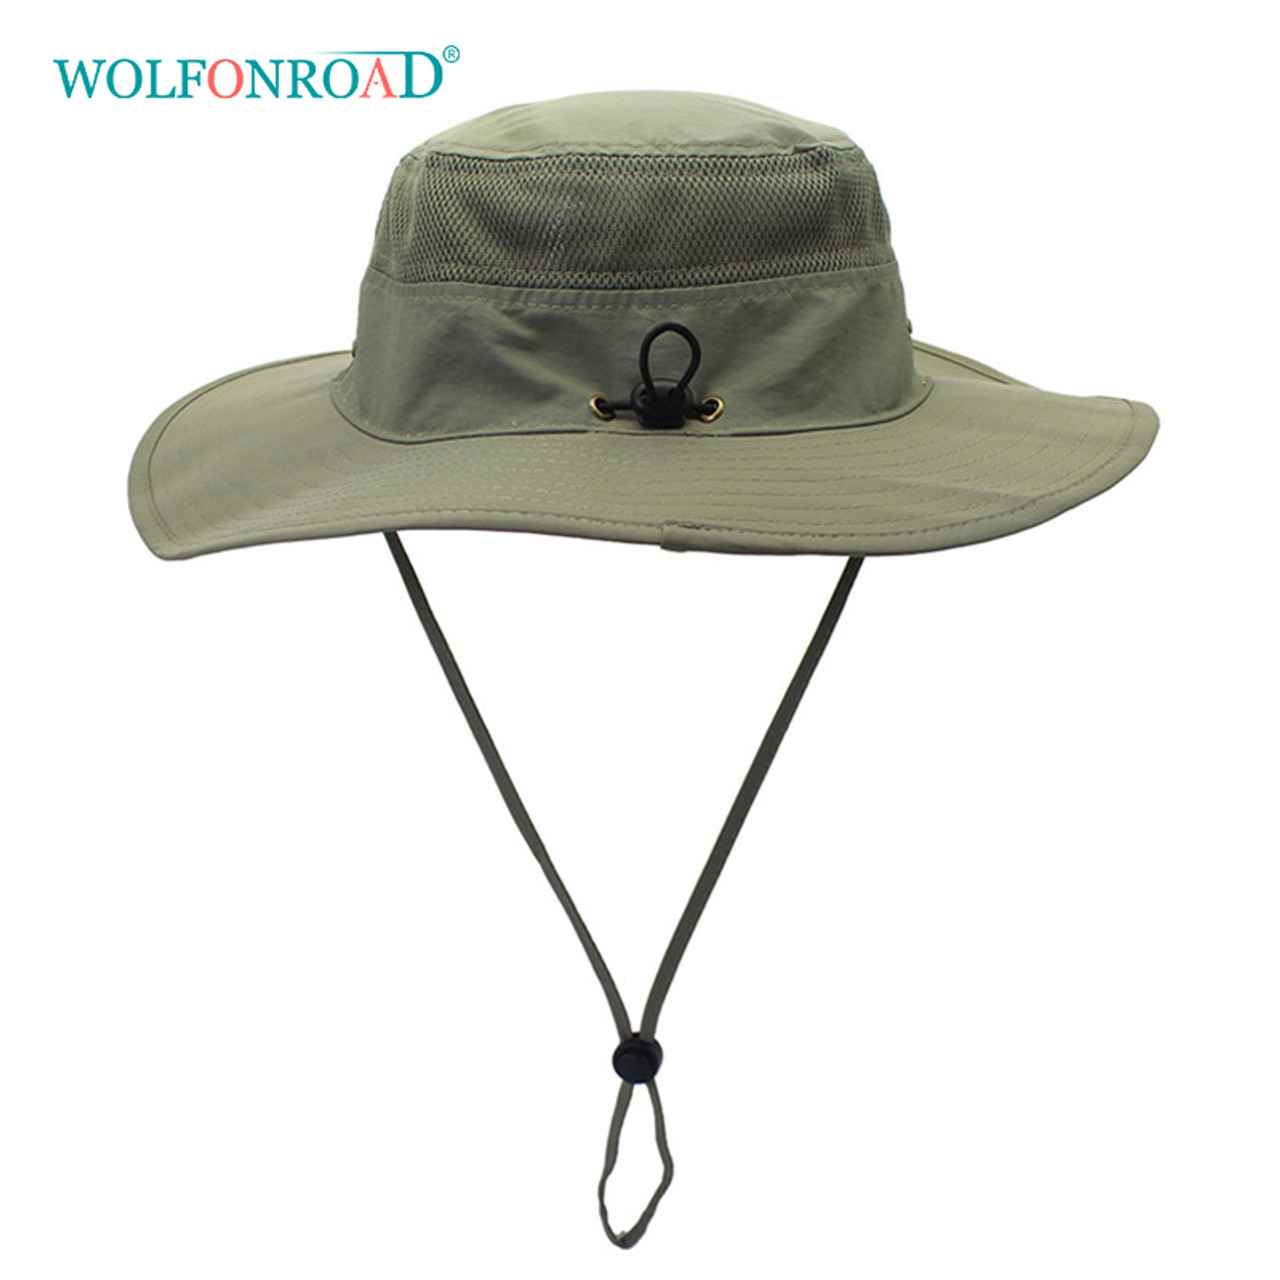 d84f266f9 WOLFONROAD Men Boonie Hat Summer Hiking Camping Caps Tactical Sniper Hats  Fishing Men's Caps Military Quick Dry Hats L-GZQF-001